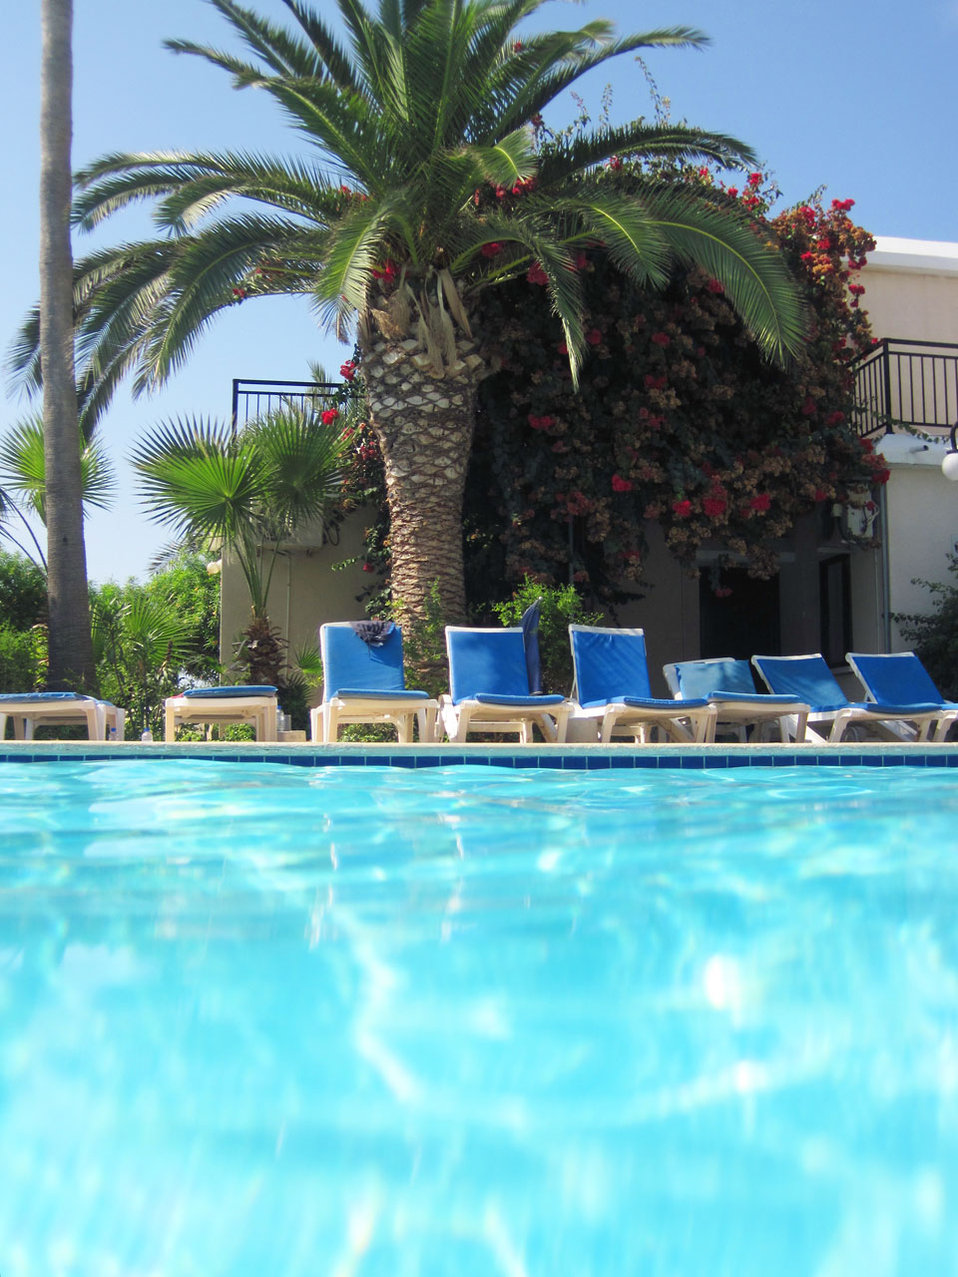 Sunbed pool and palm